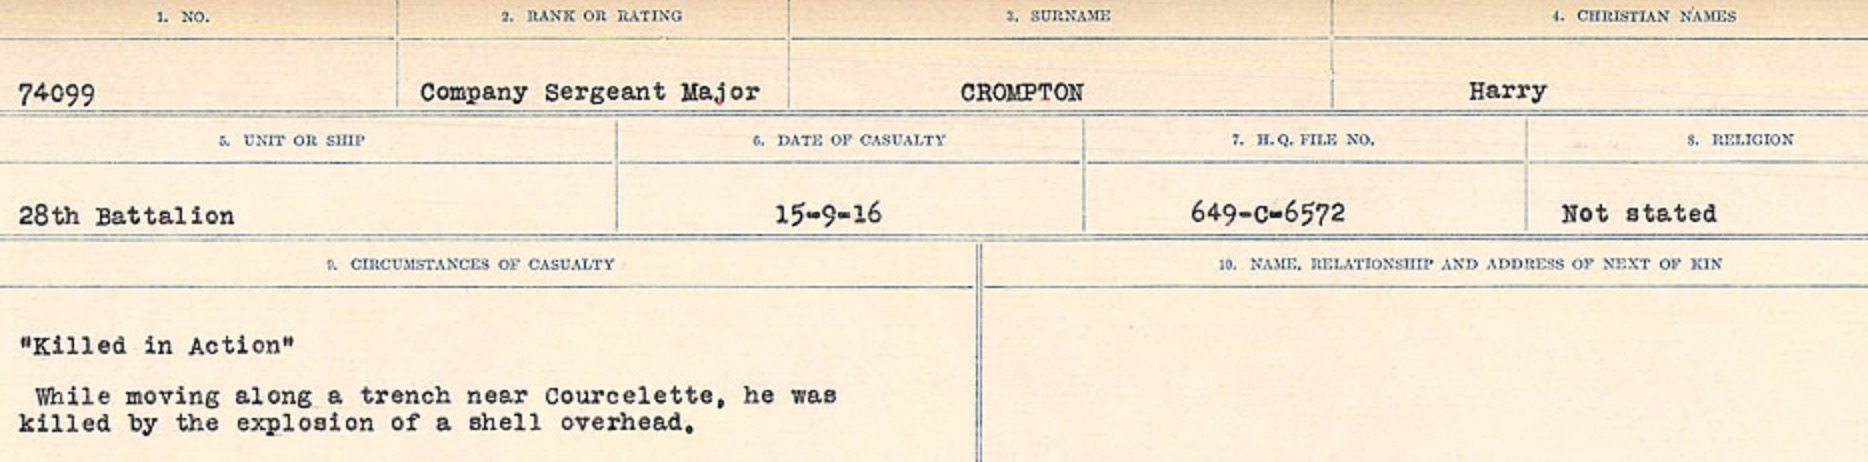 Circumstances of death registers– Source: Library and Archives Canada. CIRCUMSTANCES OF DEATH REGISTERS, FIRST WORLD WAR Surnames: CRABB TO CROSSLAND Microform Sequence 24; Volume Number 31829_B016733. Reference RG150, 1992-93/314, 168. Page 645 of 788.